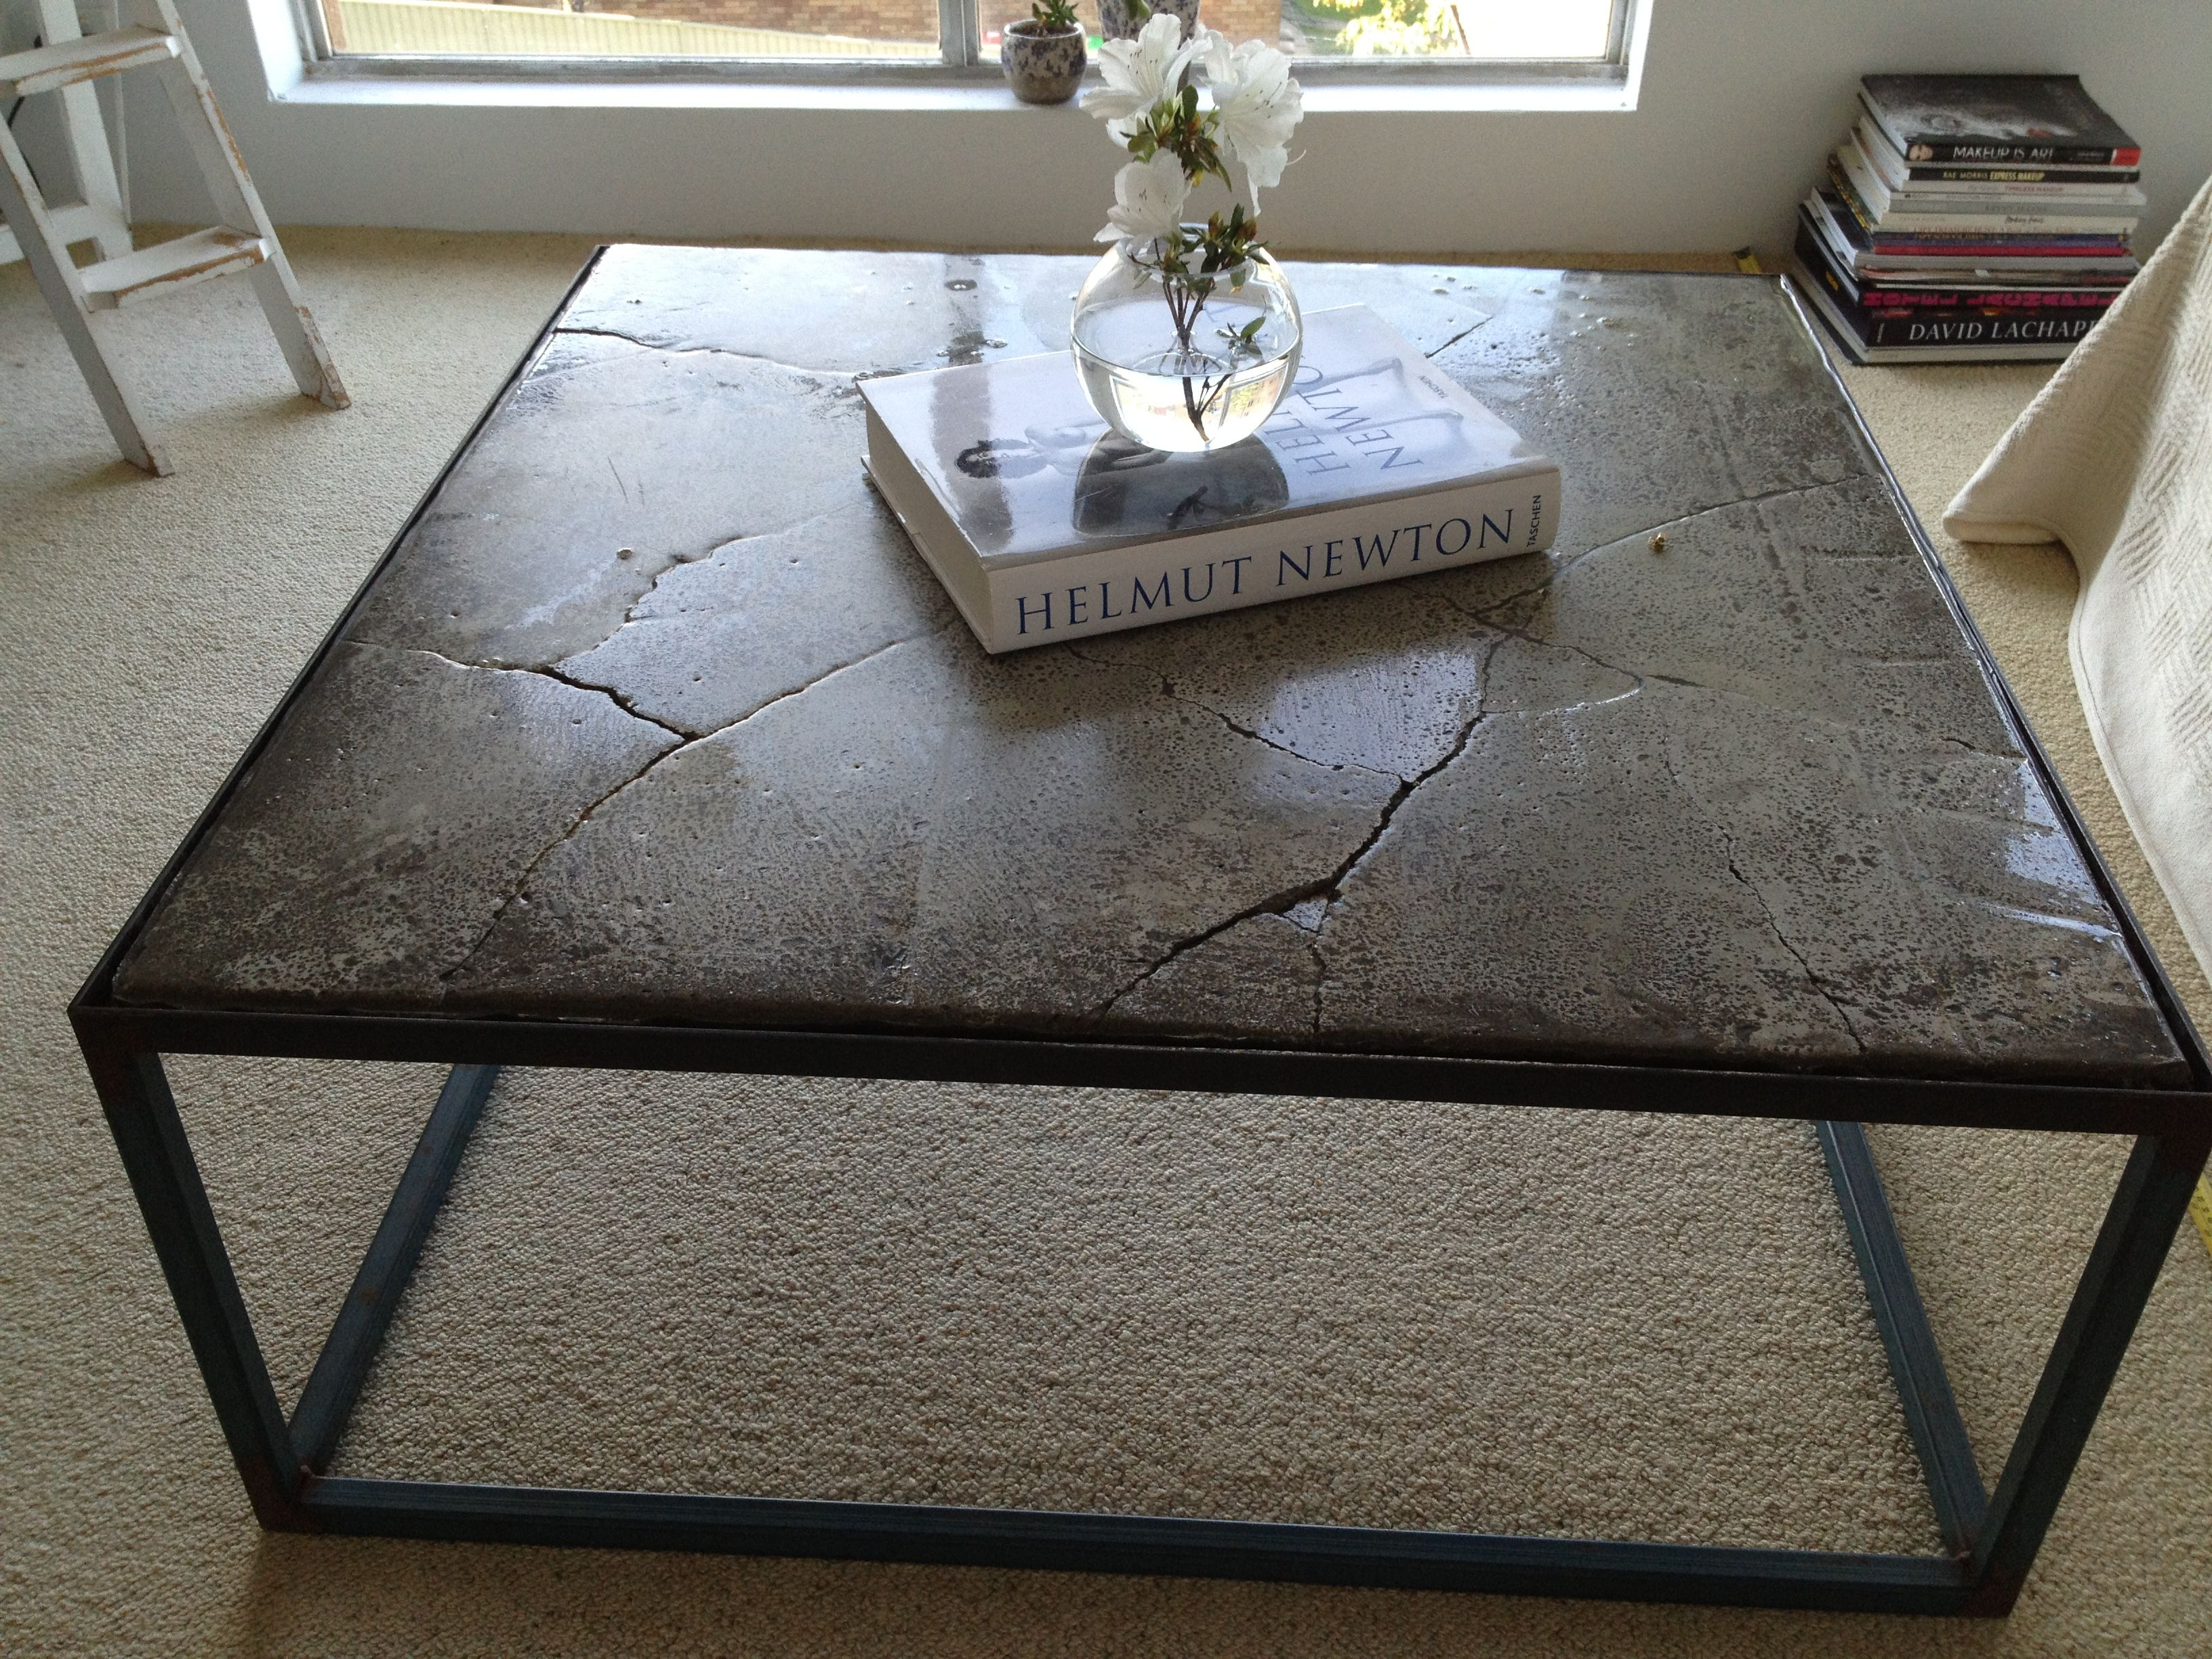 Cracked Concrete Resin Filled Coffee Table Just Moved Into Our Place Living Room Themes Coffee Table Furniture [ 2448 x 3264 Pixel ]